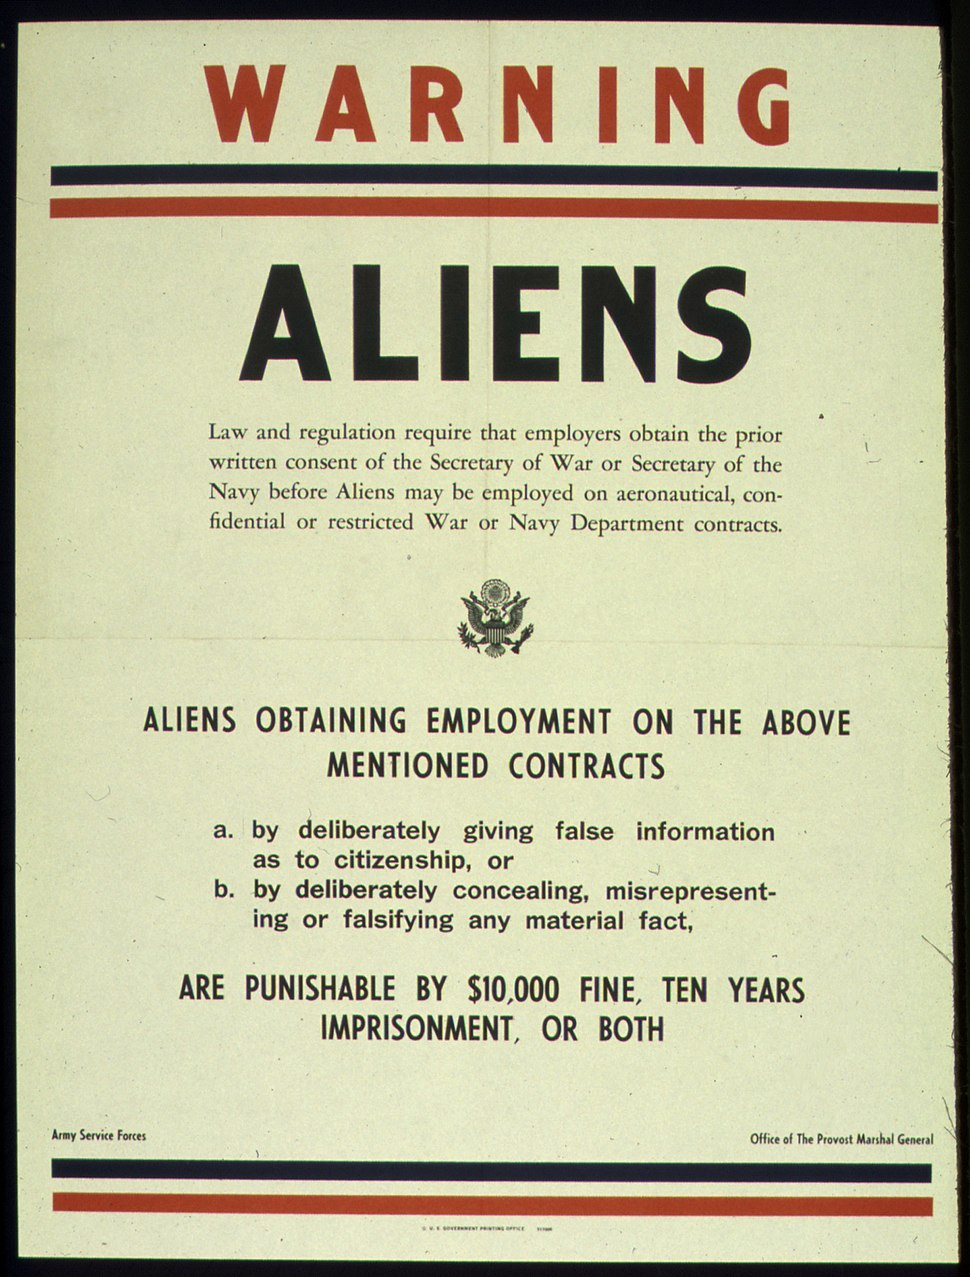 """""""WARNING - ALIENS - ARMY SERVICE FORCES"""". (Provost Marshall General) - NARA - 516037"""